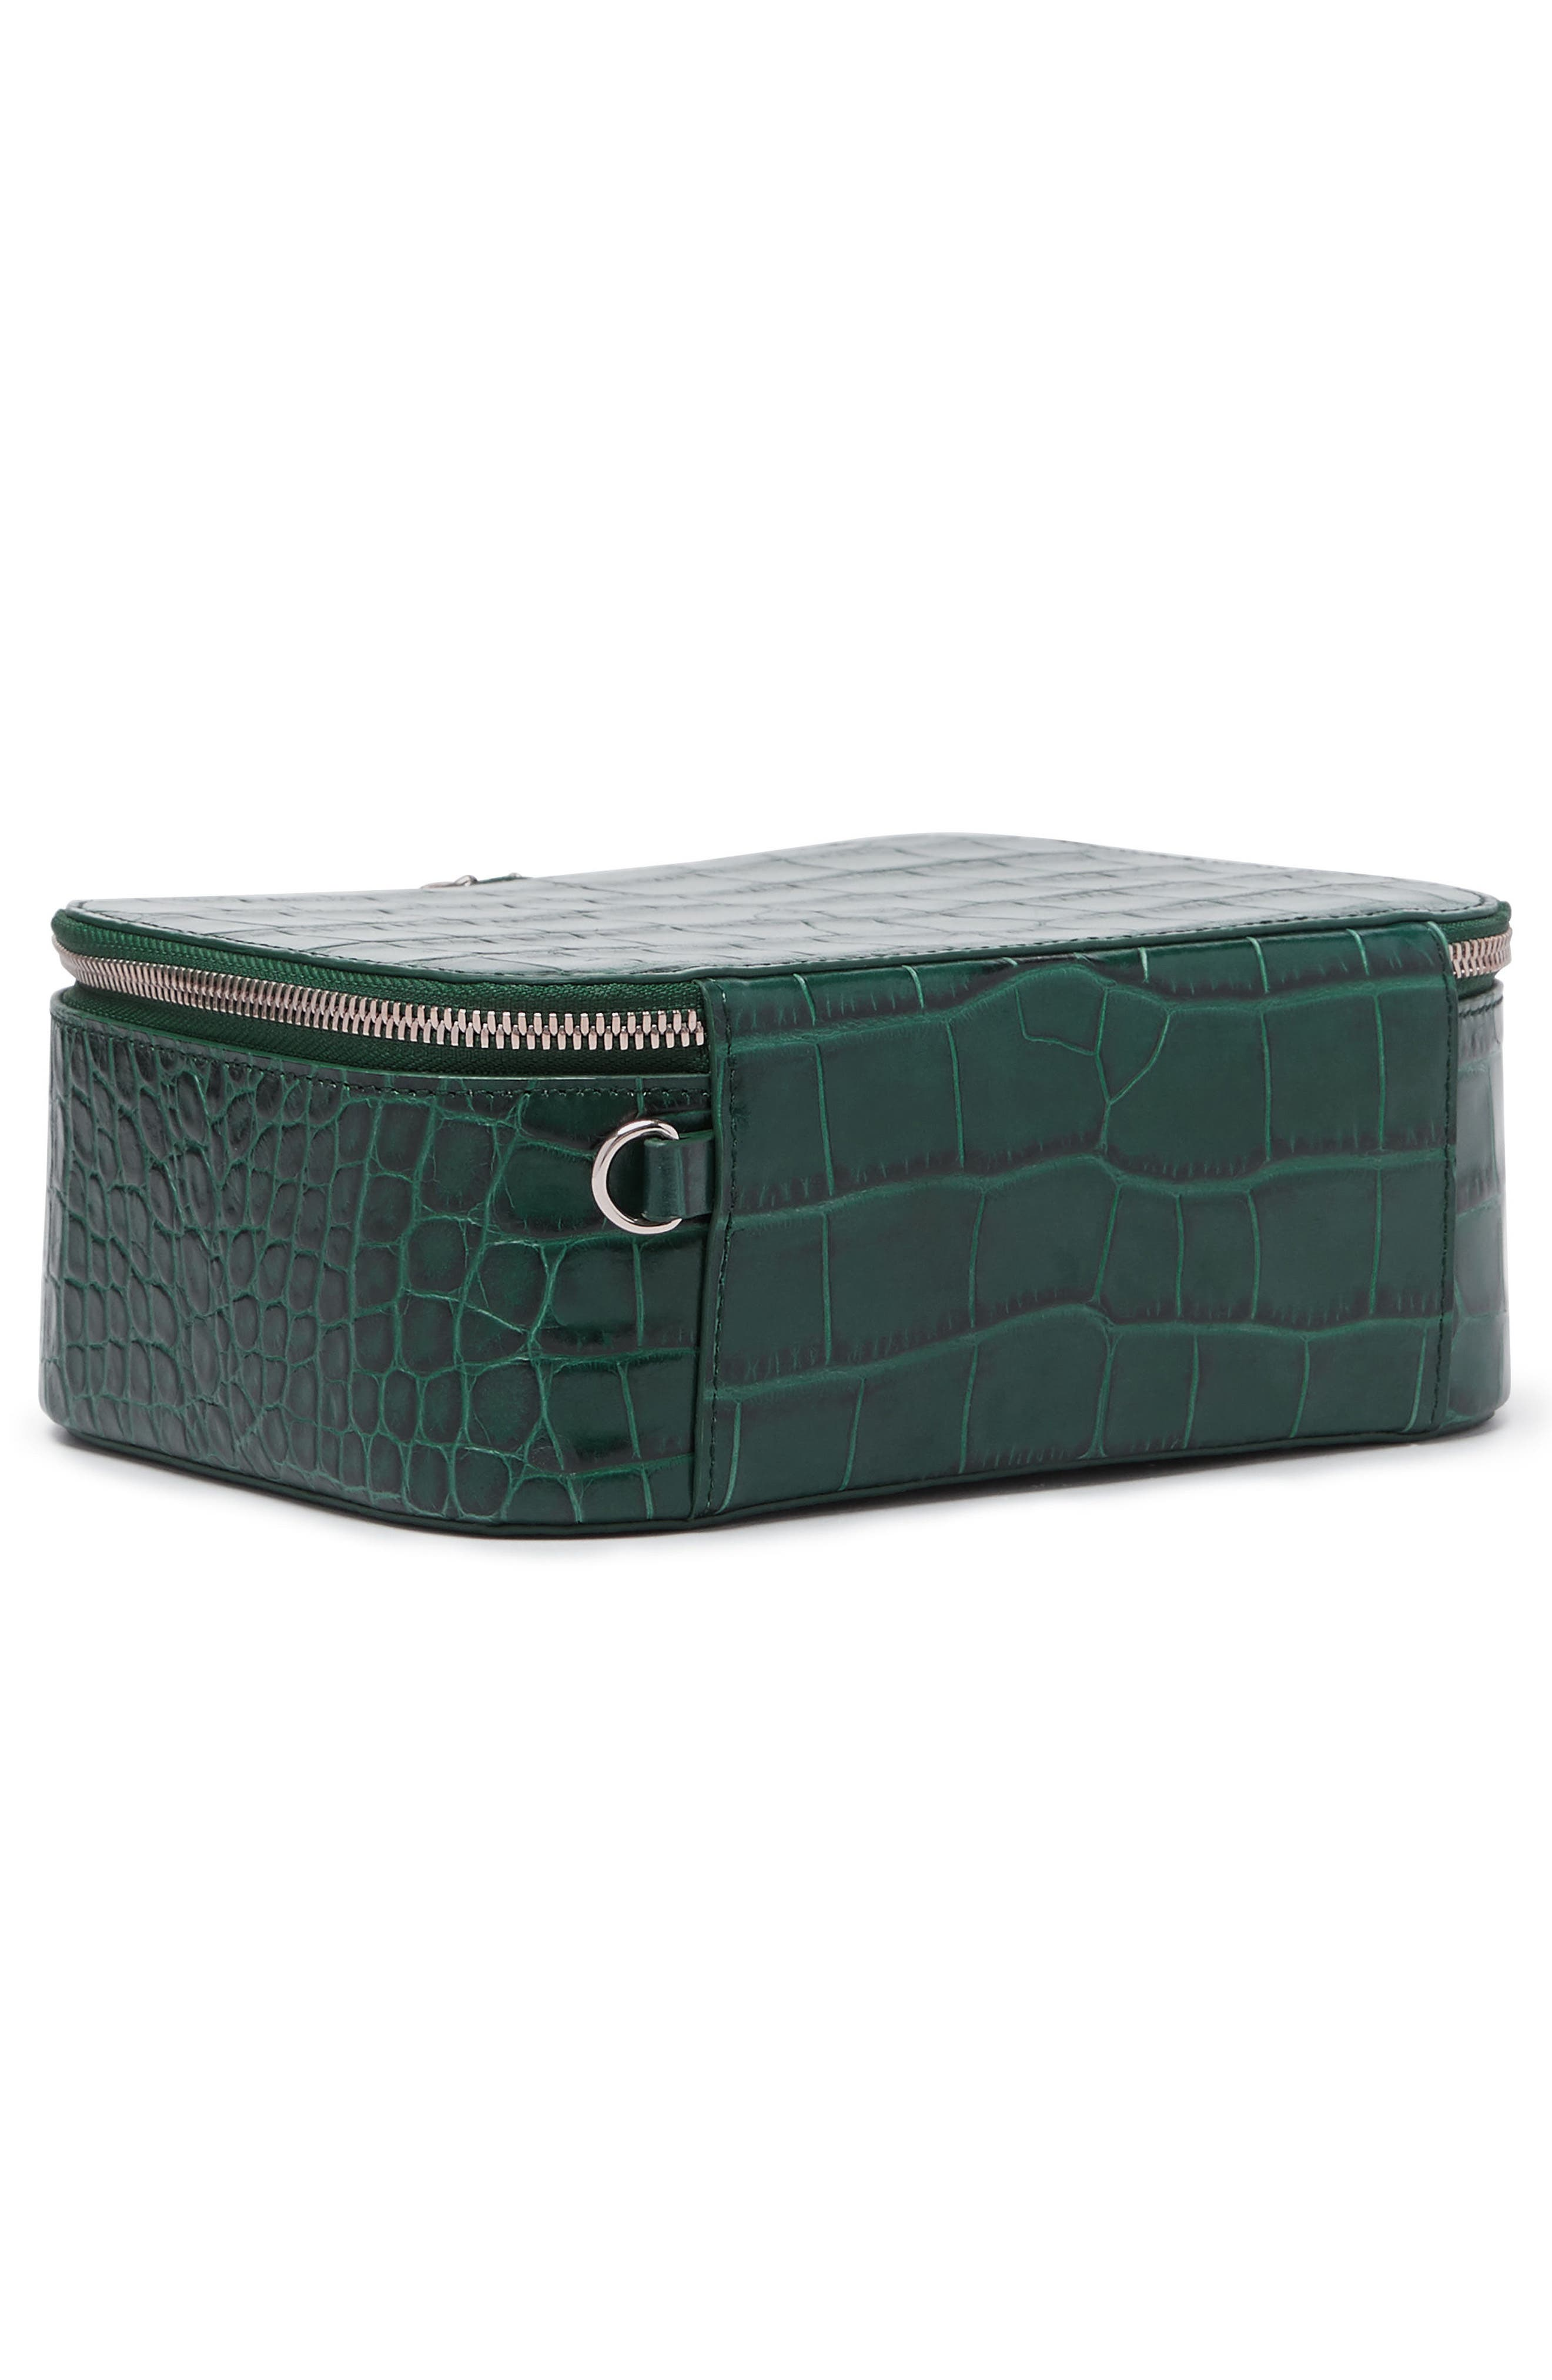 Bigger Croc Embossed Leather Makeup Case,                             Alternate thumbnail 3, color,                             Emerald